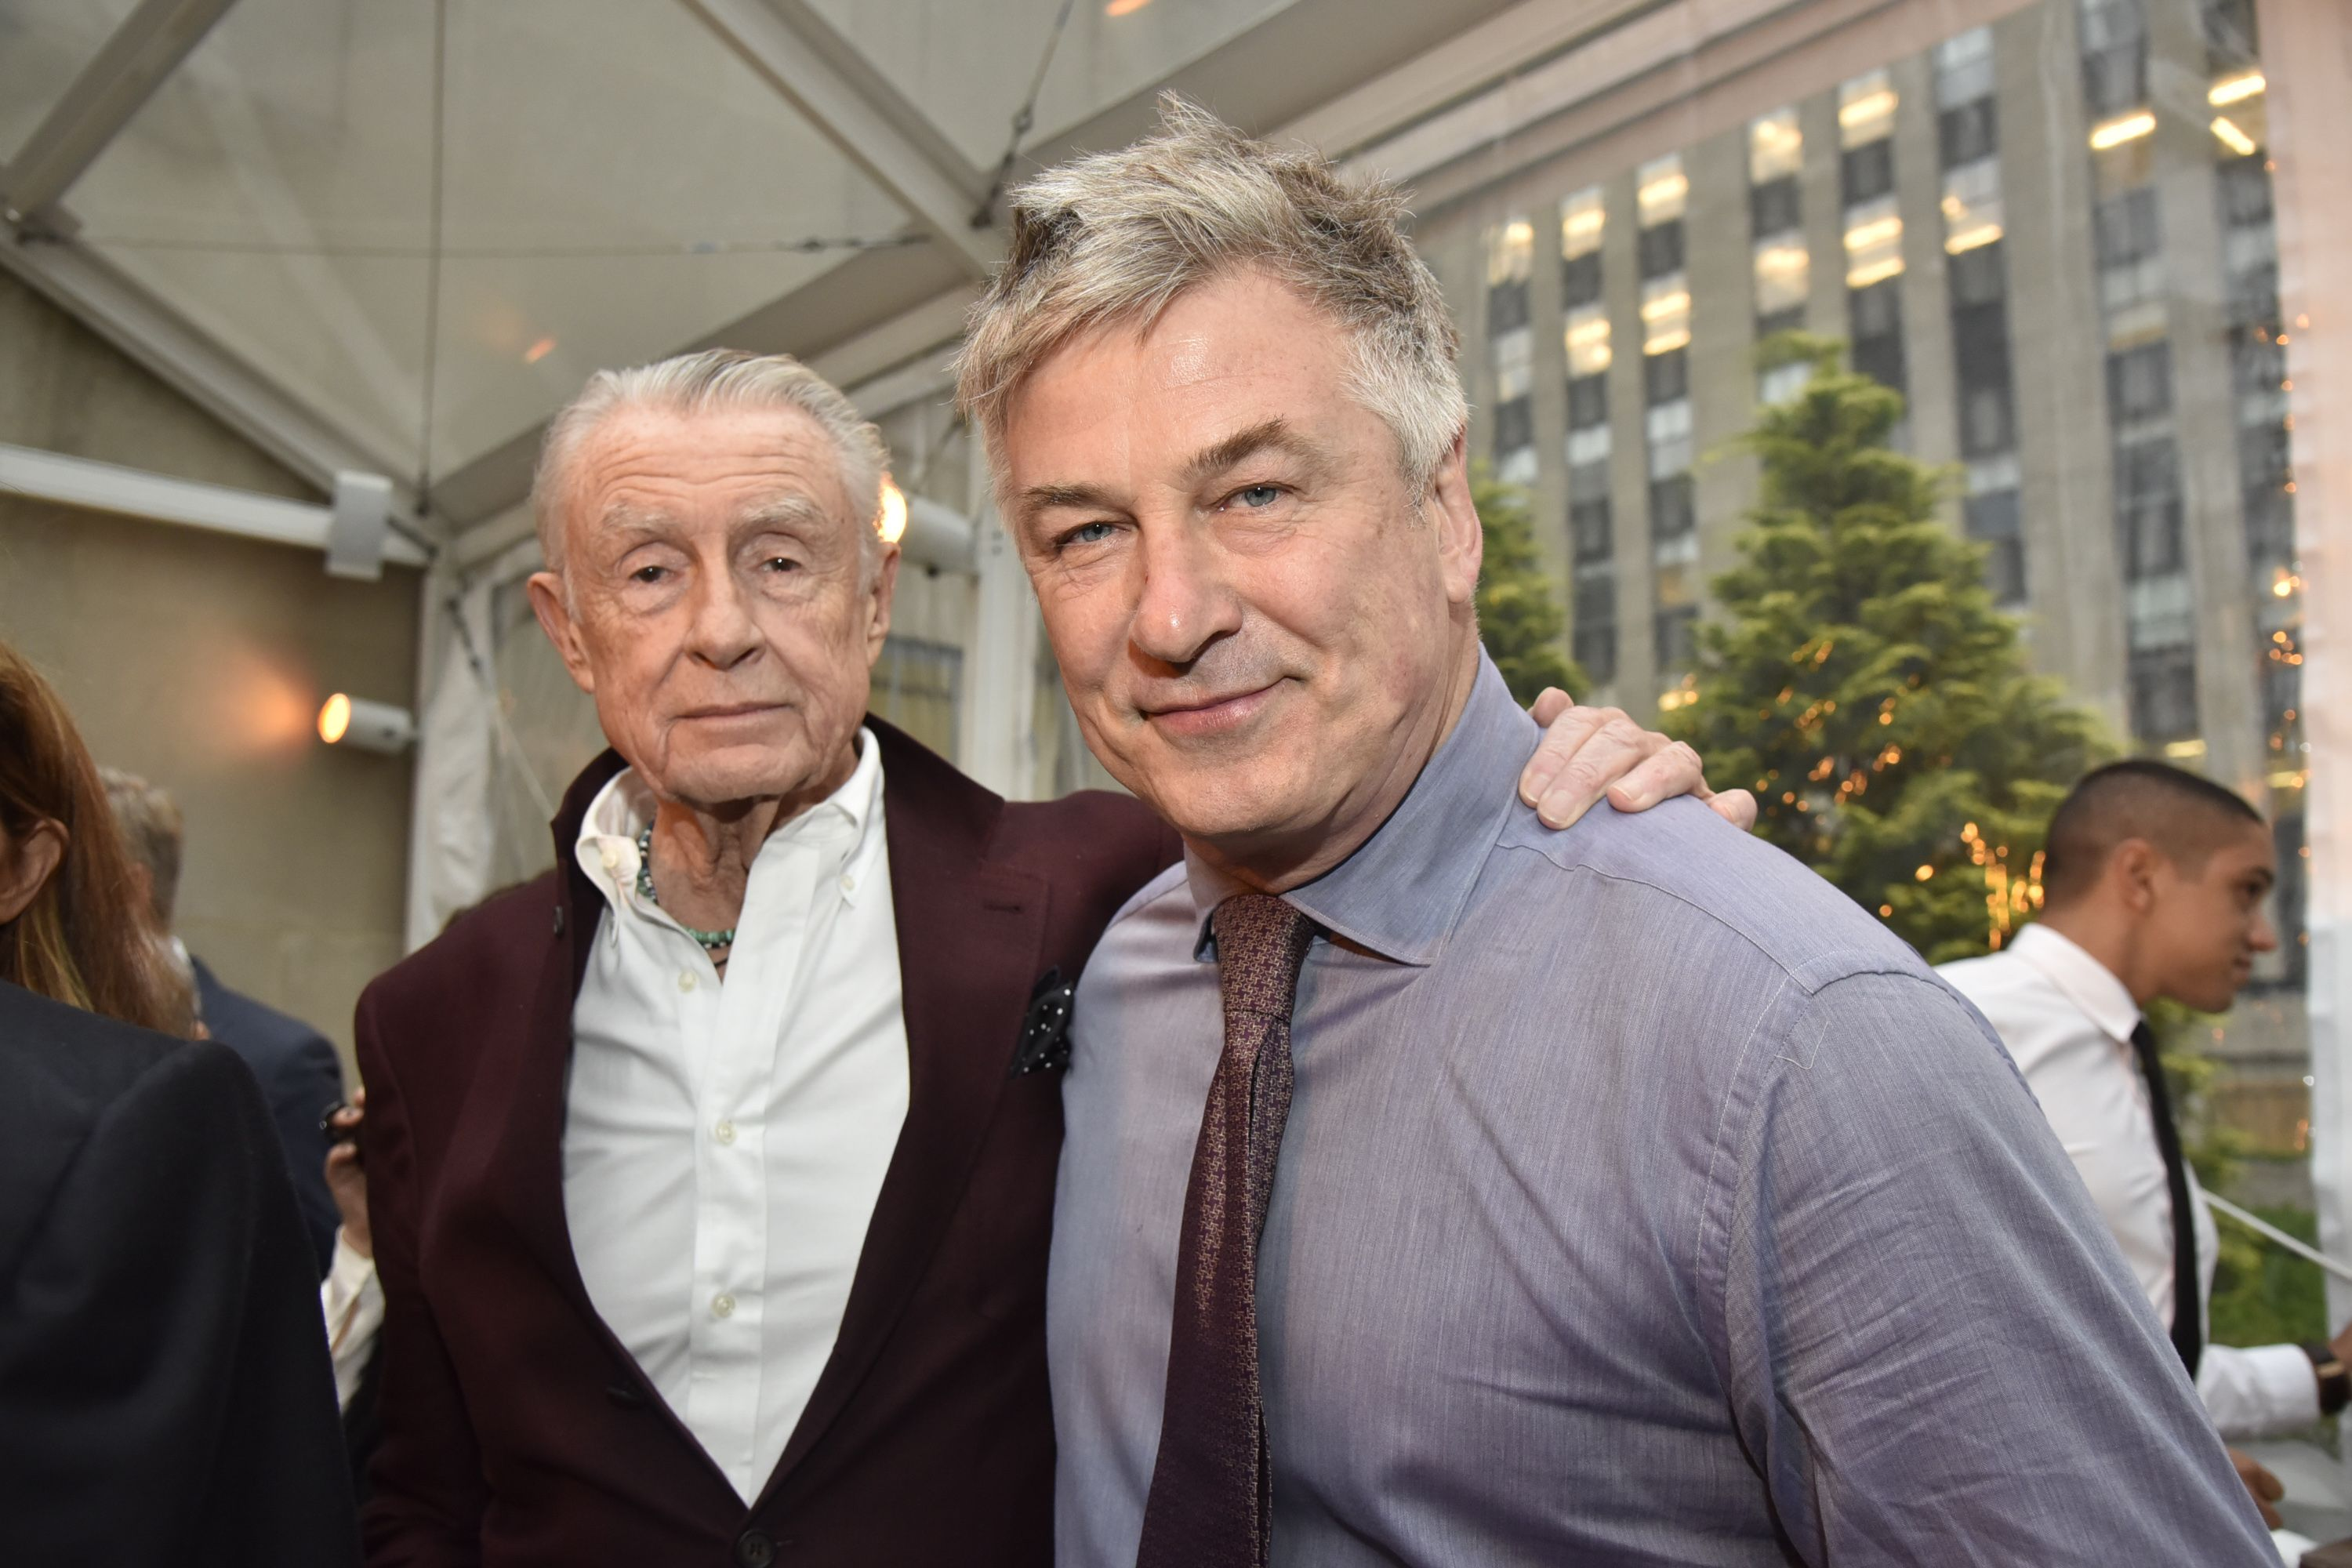 Alec Baldwin and Director Joel Schumacher